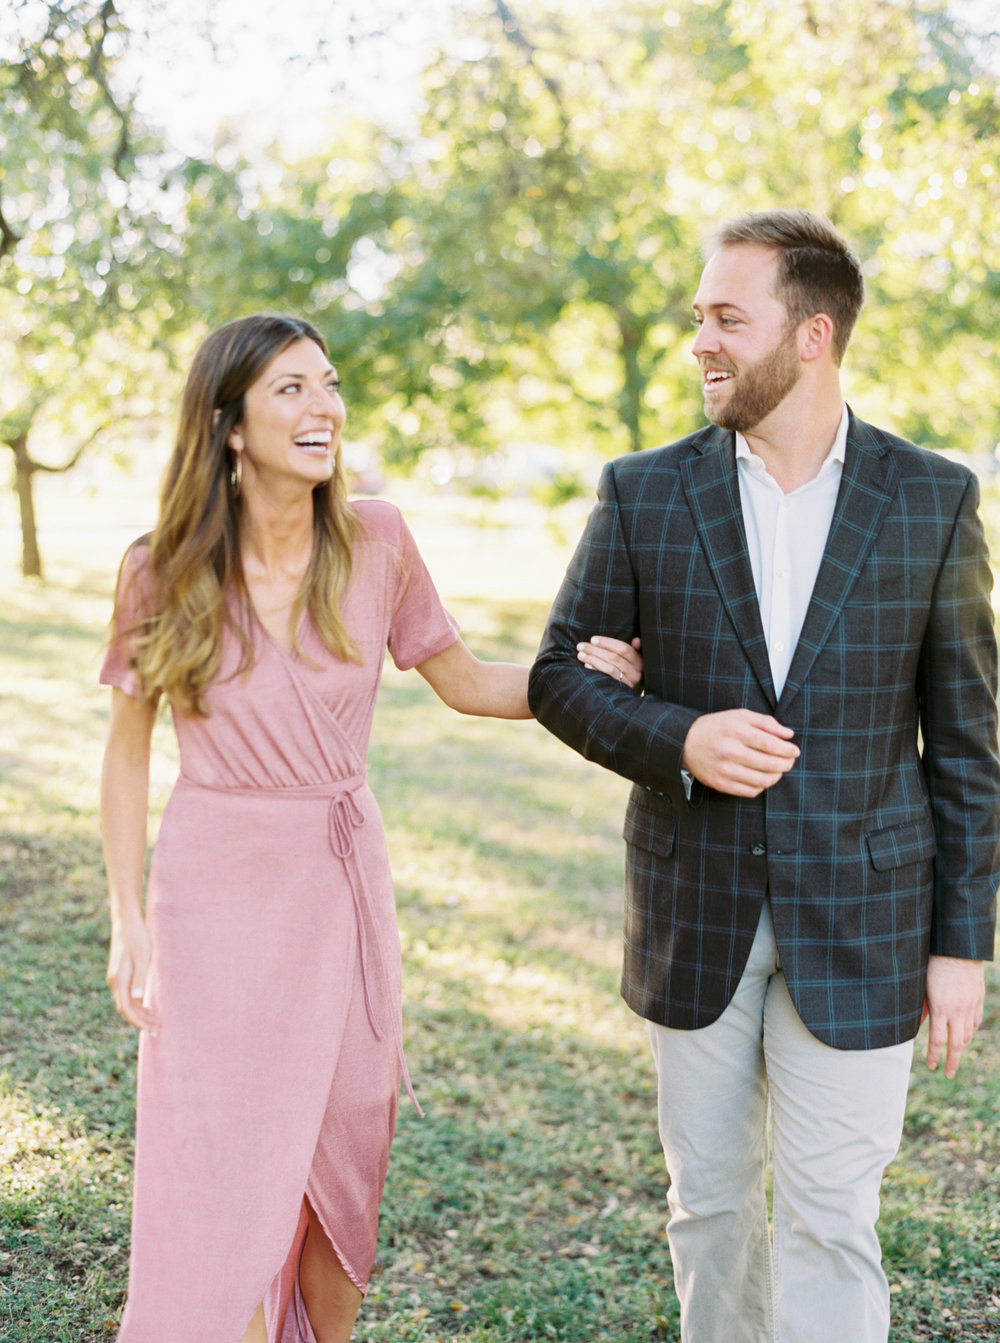 Engagement Session Outfits-132.jpg